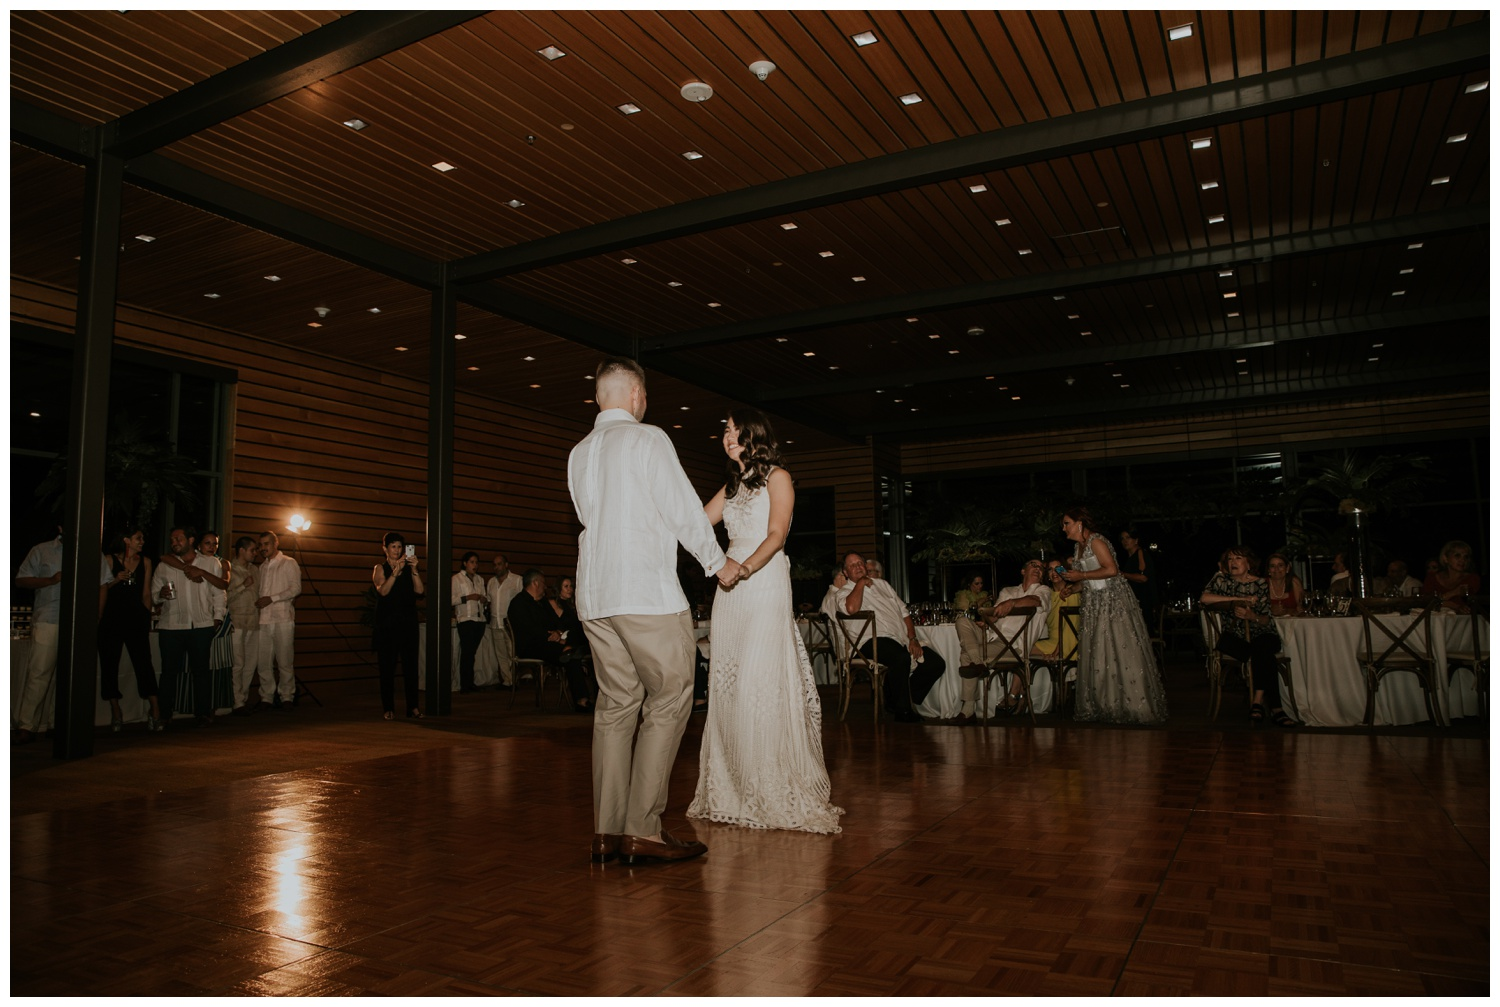 Ana + Sean || Jack Guenther Pavilion at the Briscoe Wedding San Antonio, Texas (Joshua and Parisa – Contista Productions)_0097.jpg